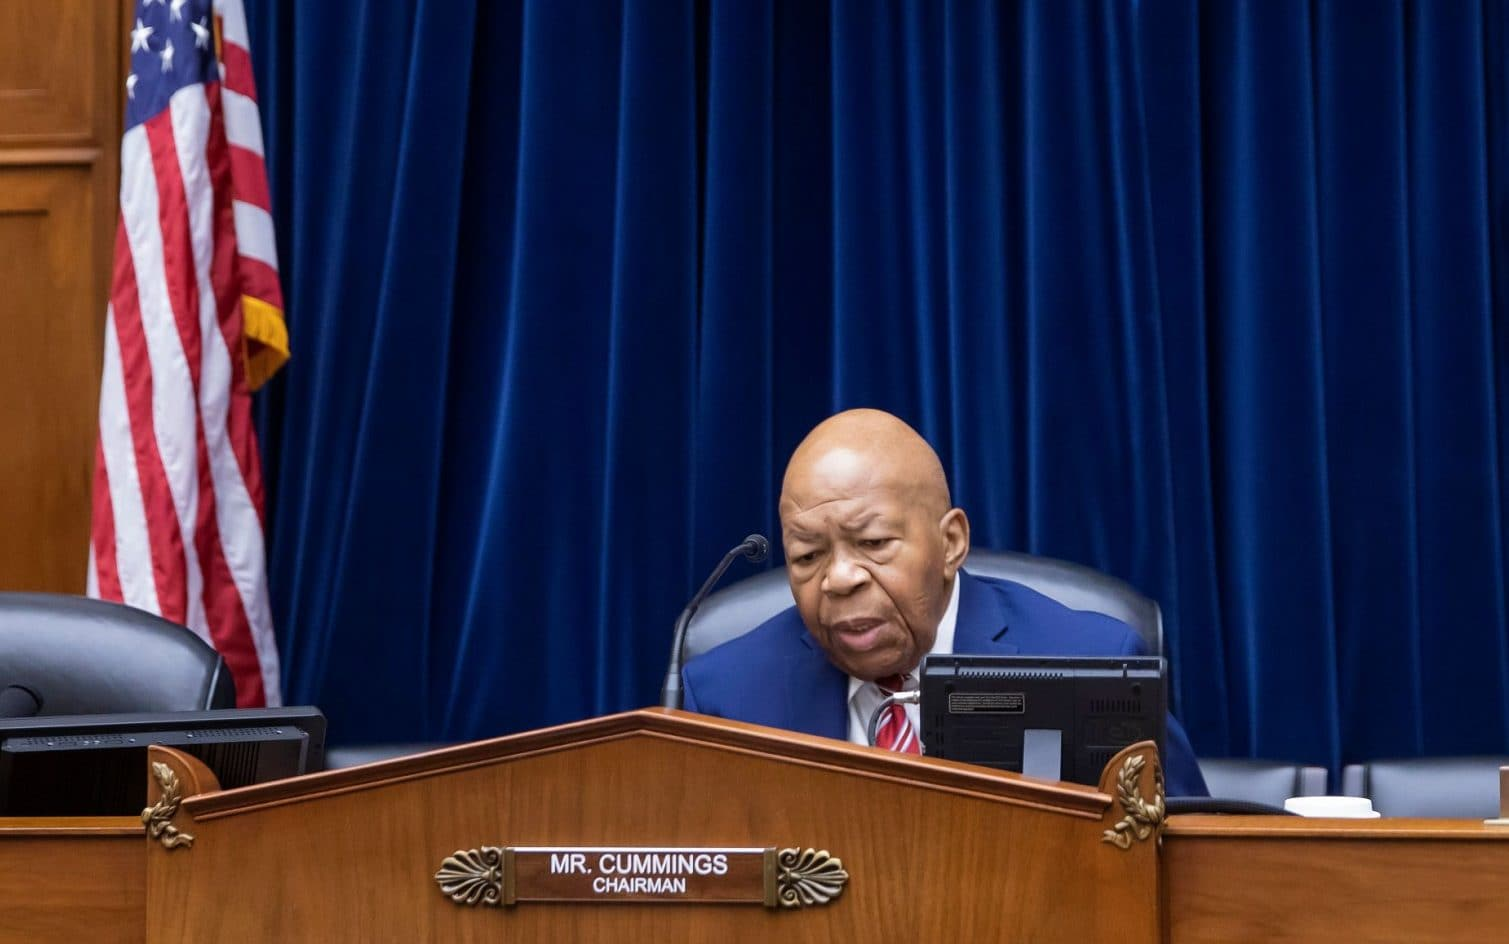 Trump attacks black congressman Elijah Cummings in remarks condemned by Pelosi as racist